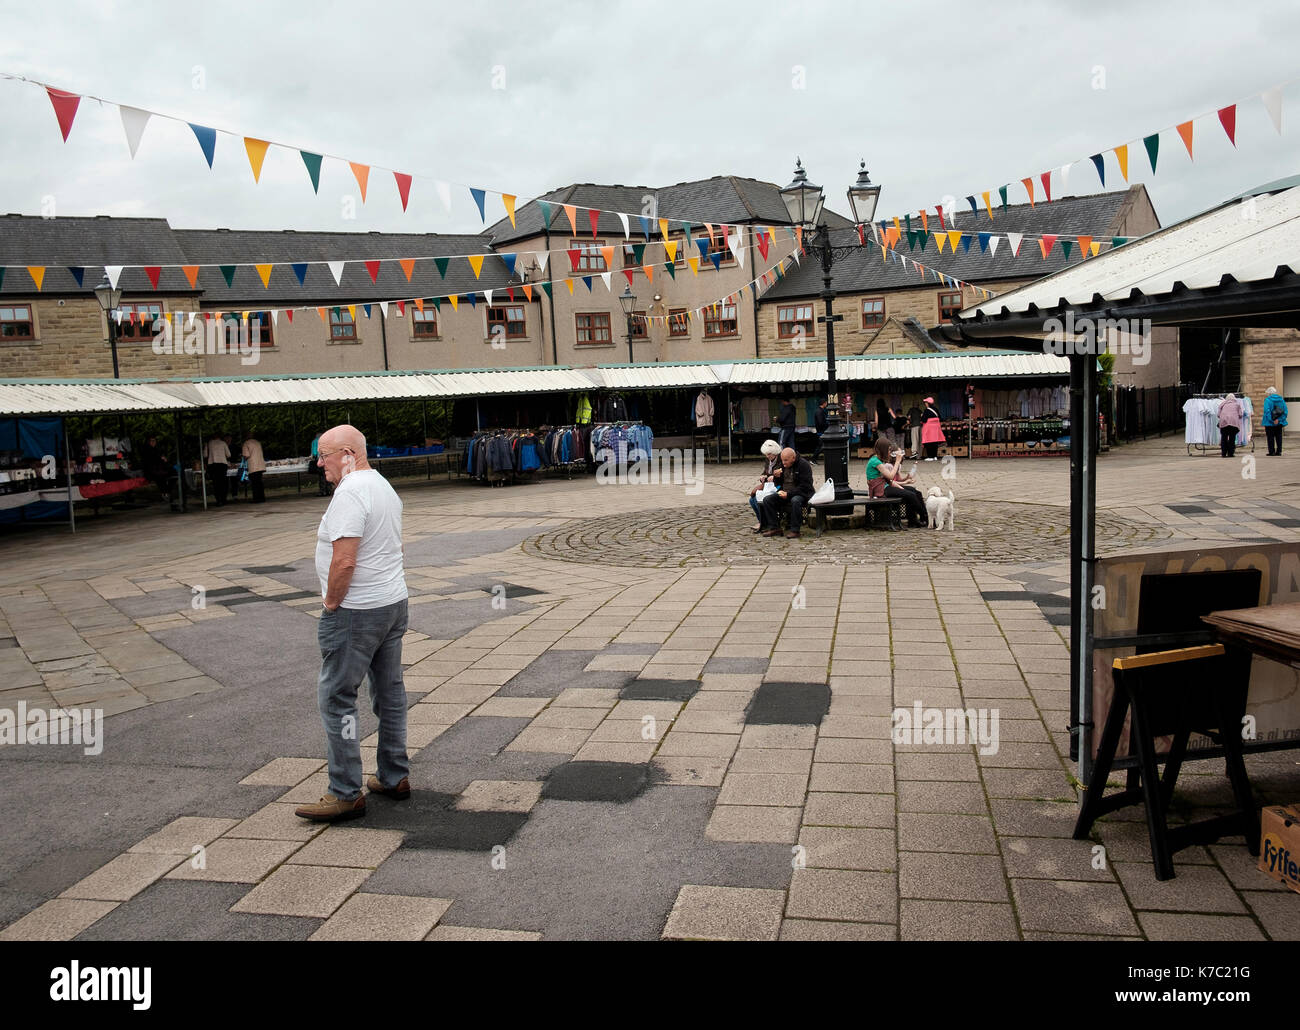 The new market place in the centre of the Lancashire town of Clitheroe - Stock Image